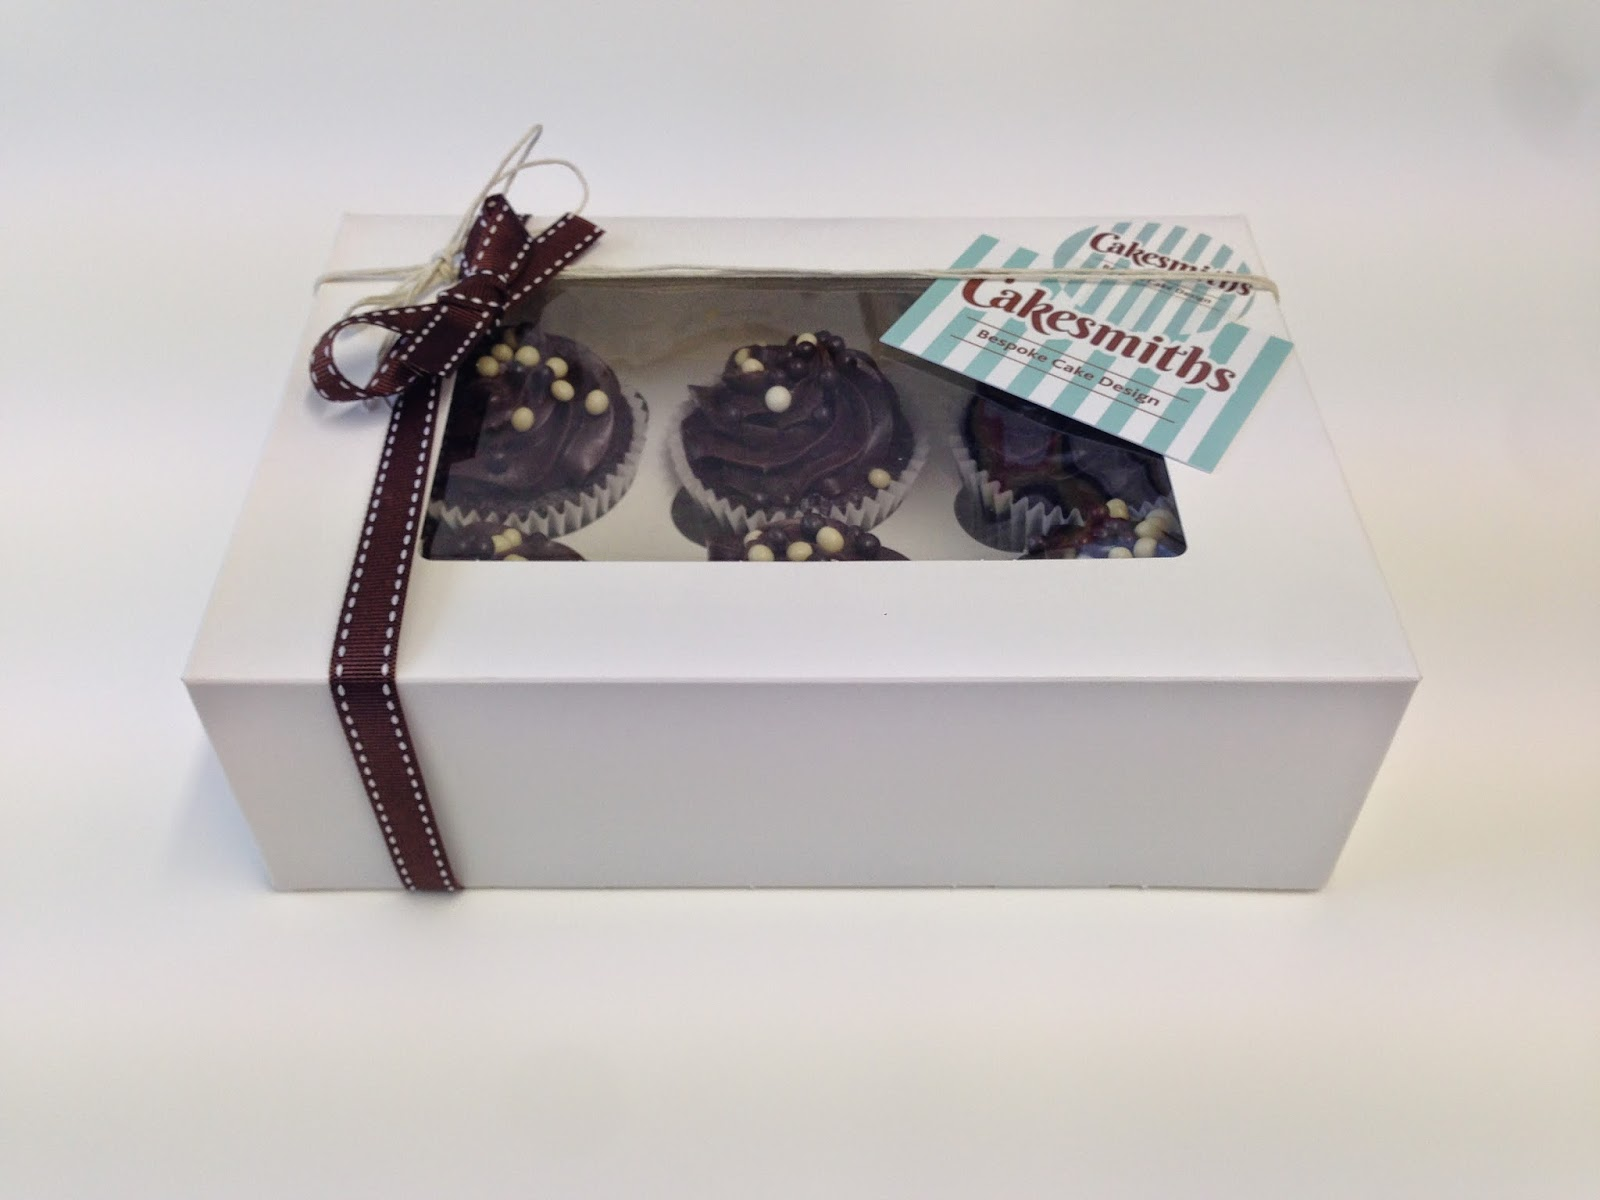 Cakesmiths Blog: Cakesmiths launch NEW Cupcake Gift Box for any ...